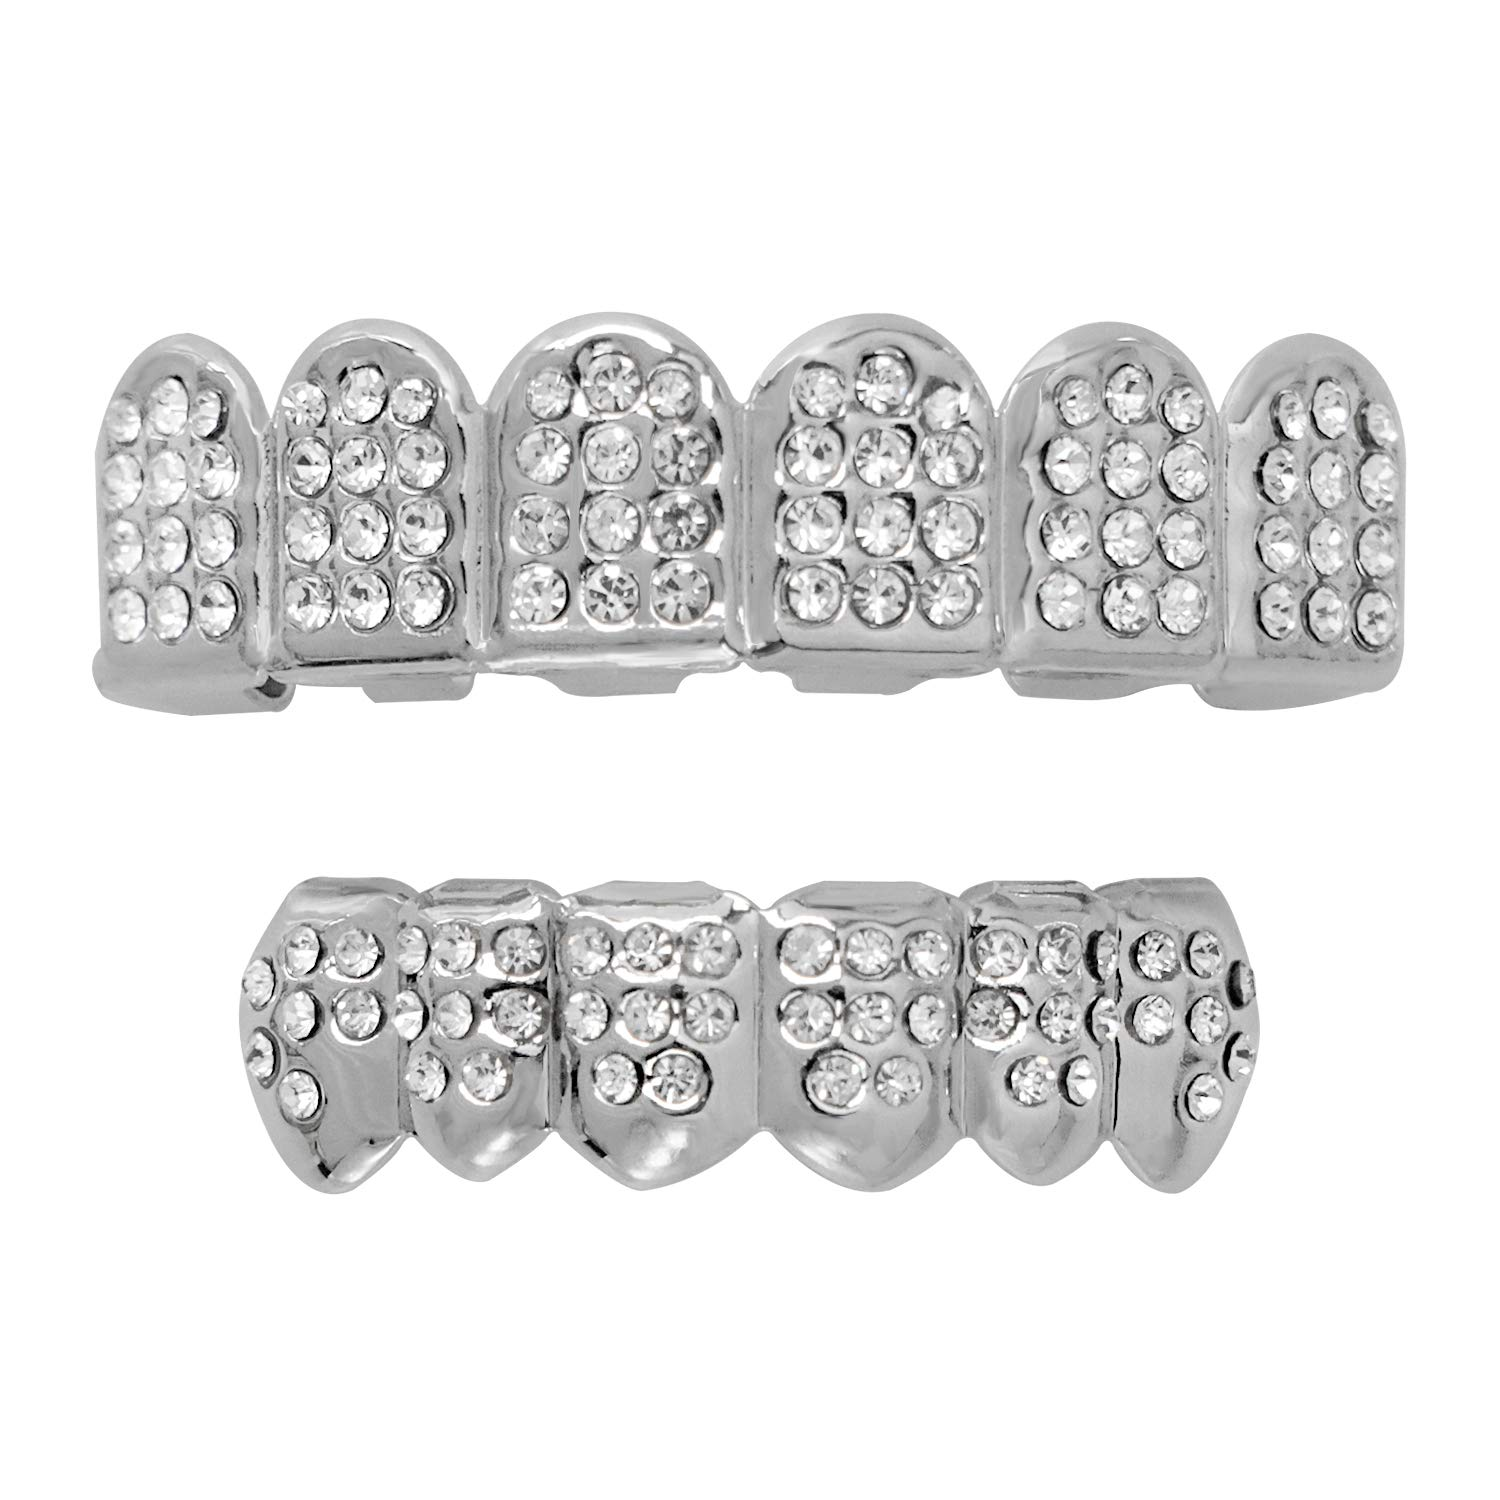 18K Silver Plated Grillz Caps Top & Bottom Set for New Custom Fit Hip Hop Style + 2 Extra Molding Bars by Careland